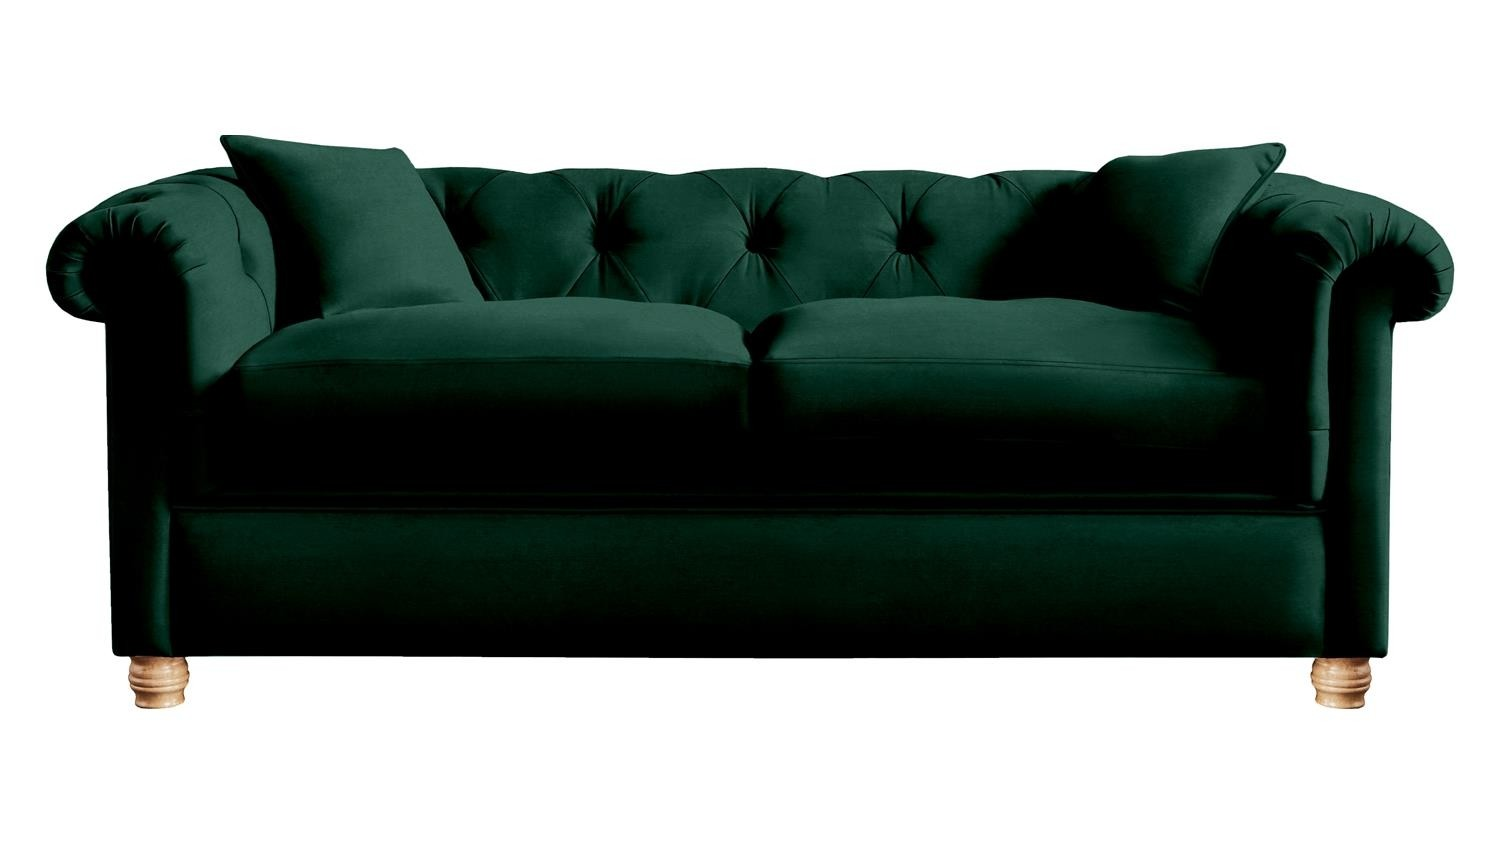 The Haxton 2 Seater Sofa Bed